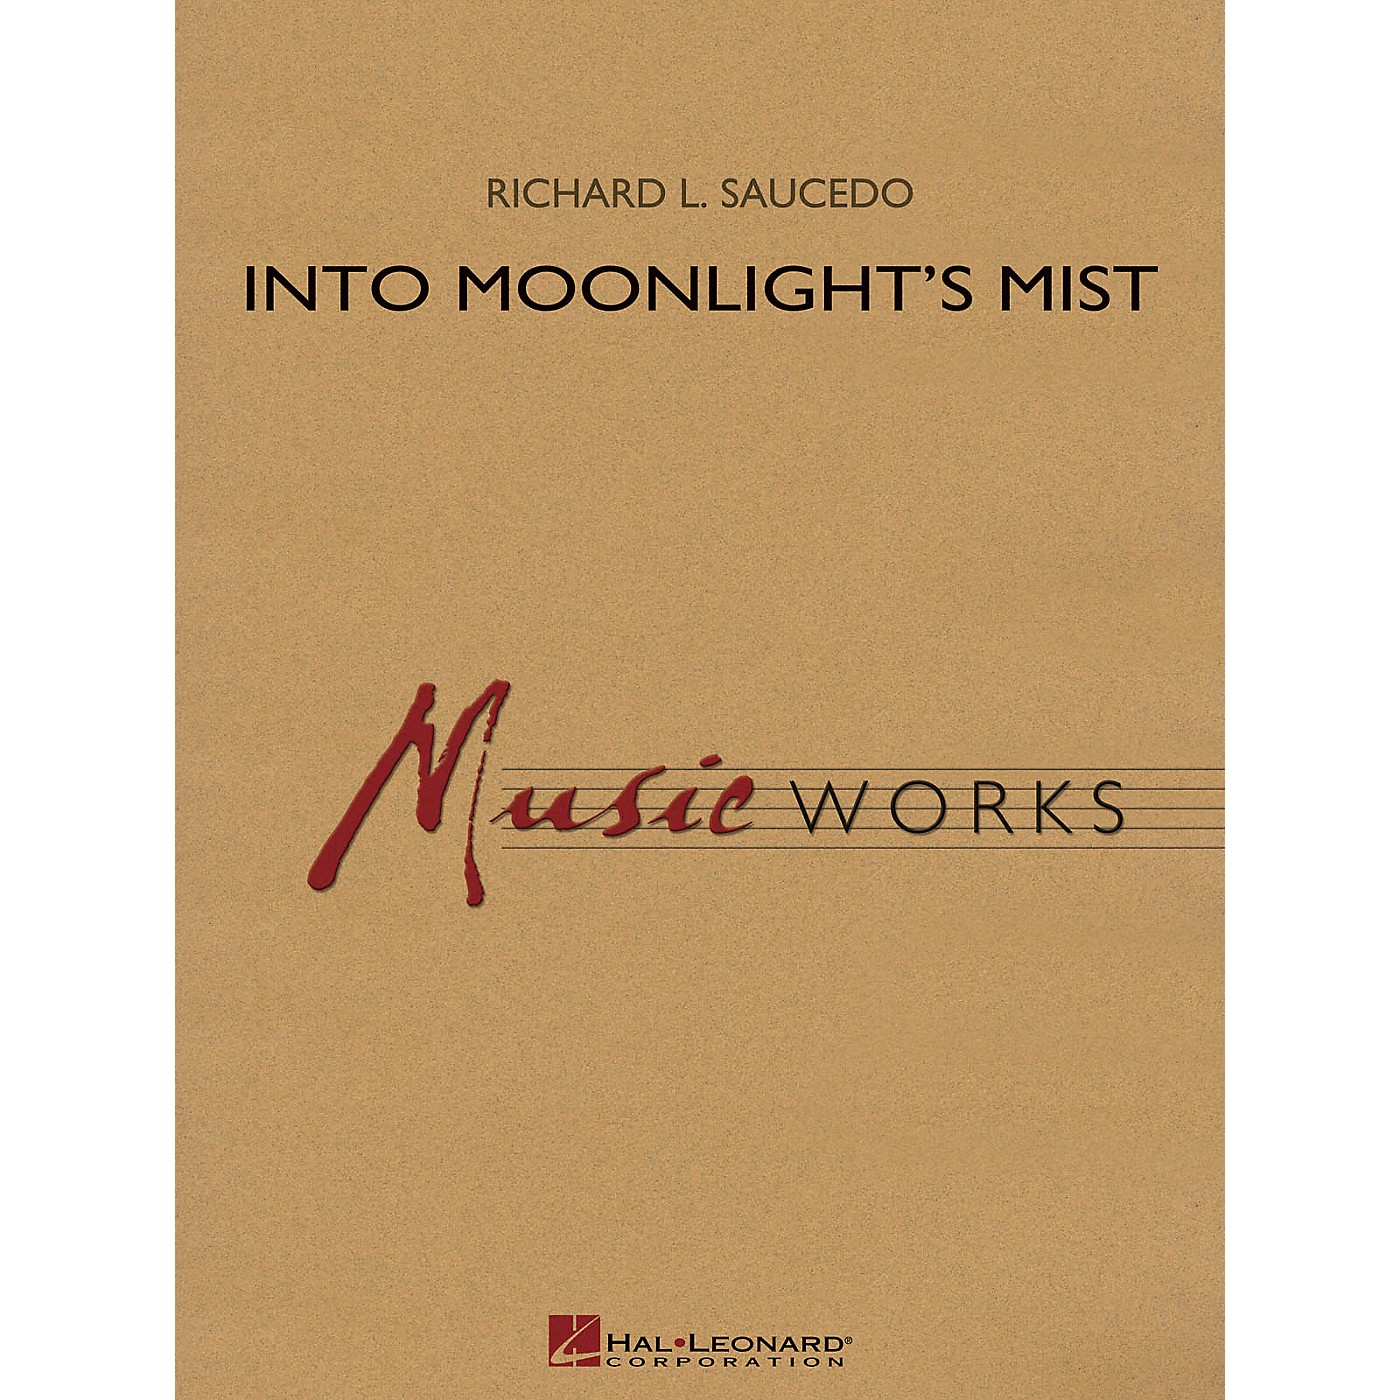 Hal Leonard Into Moonlight's Mist Concert Band Level 4 Composed by Richard L. Saucedo thumbnail